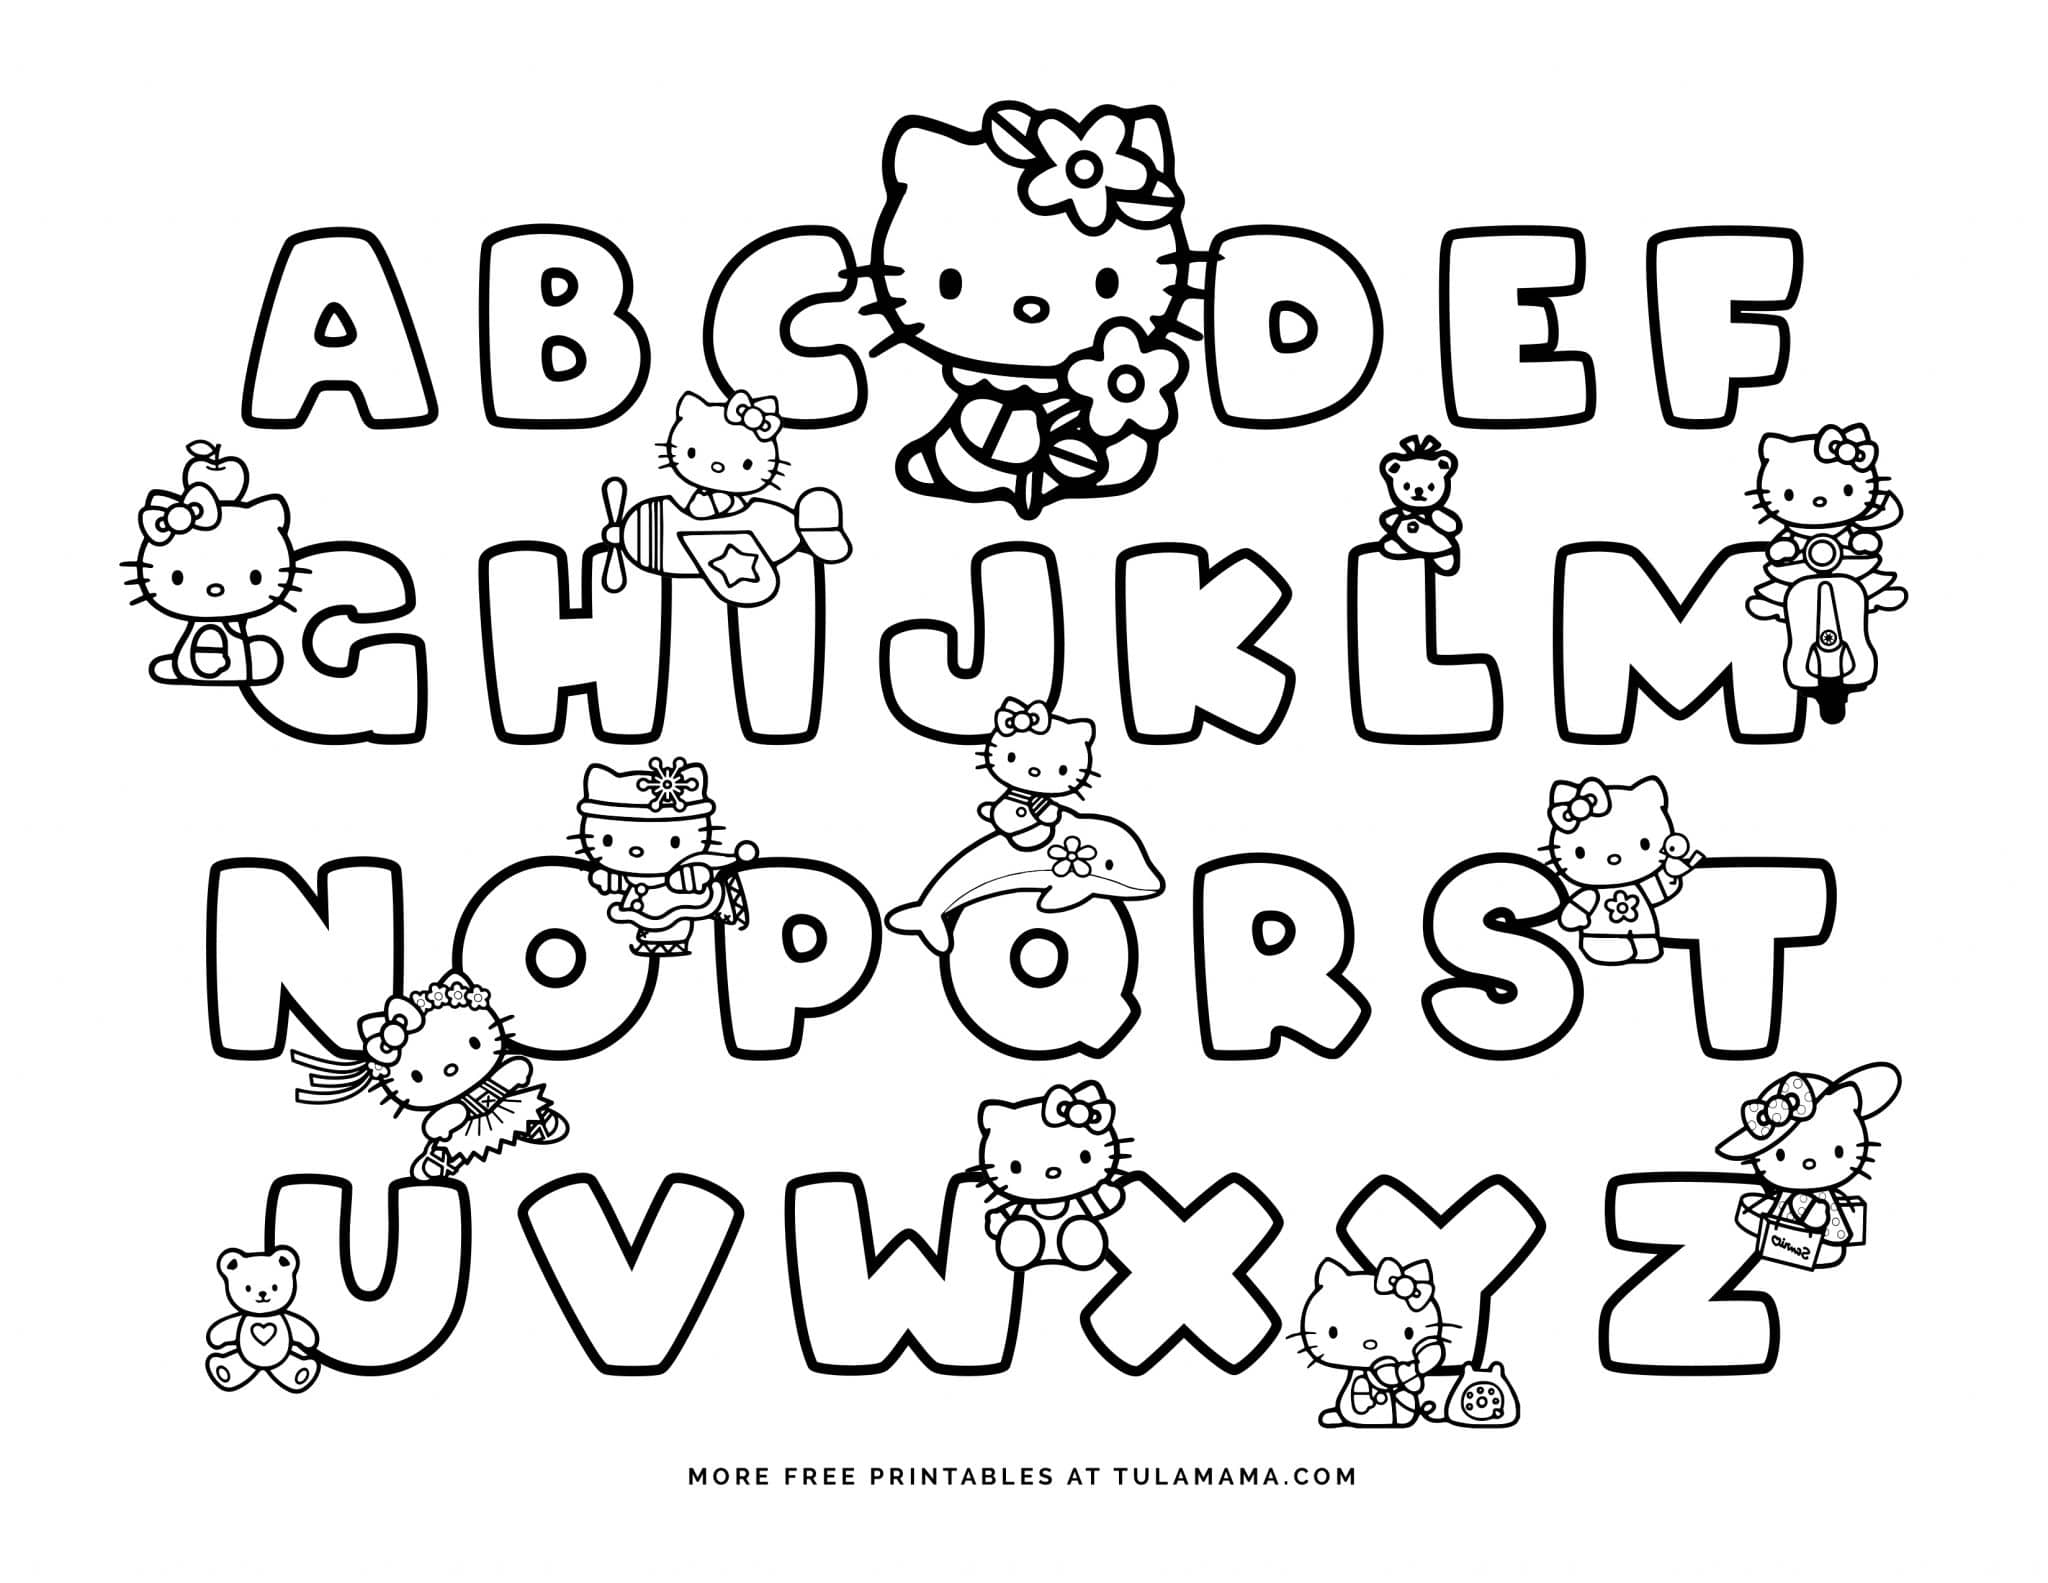 hello kitty worksheets printable free hello kitty printables and abc coloring pages tulamama kitty worksheets hello printable